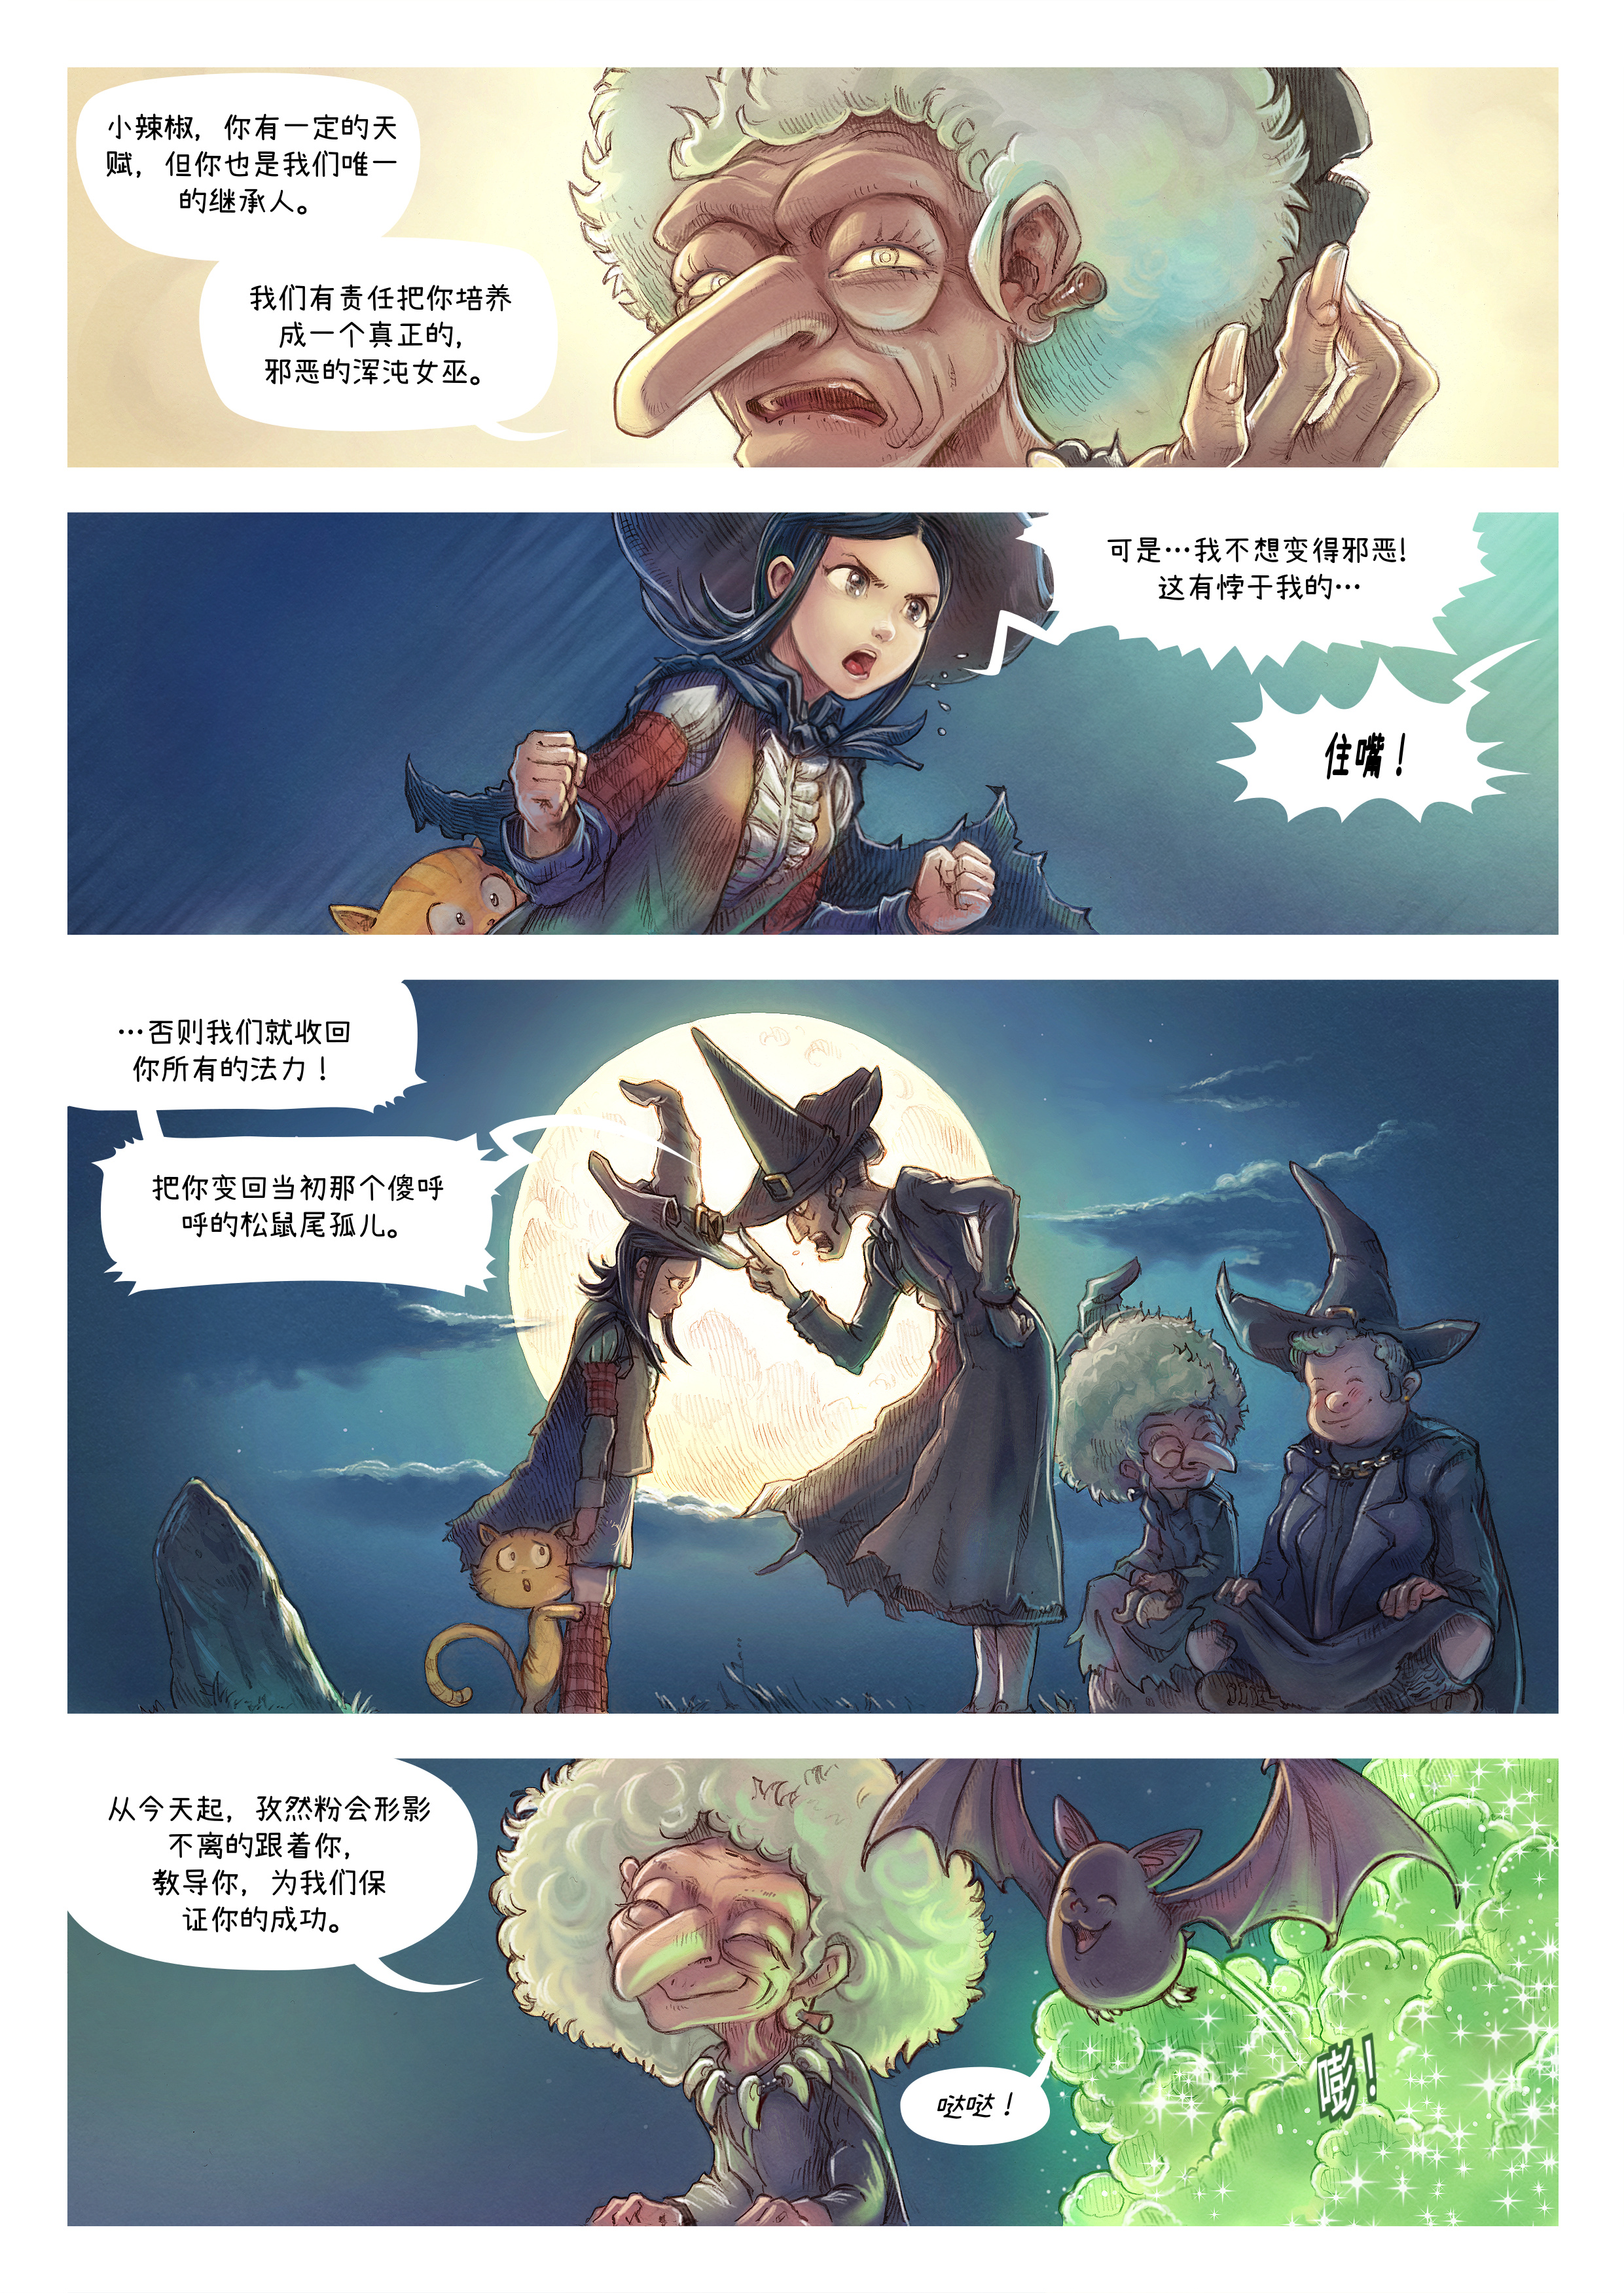 A webcomic page of Pepper&Carrot, 漫画全集 11 [cn], 页面 2